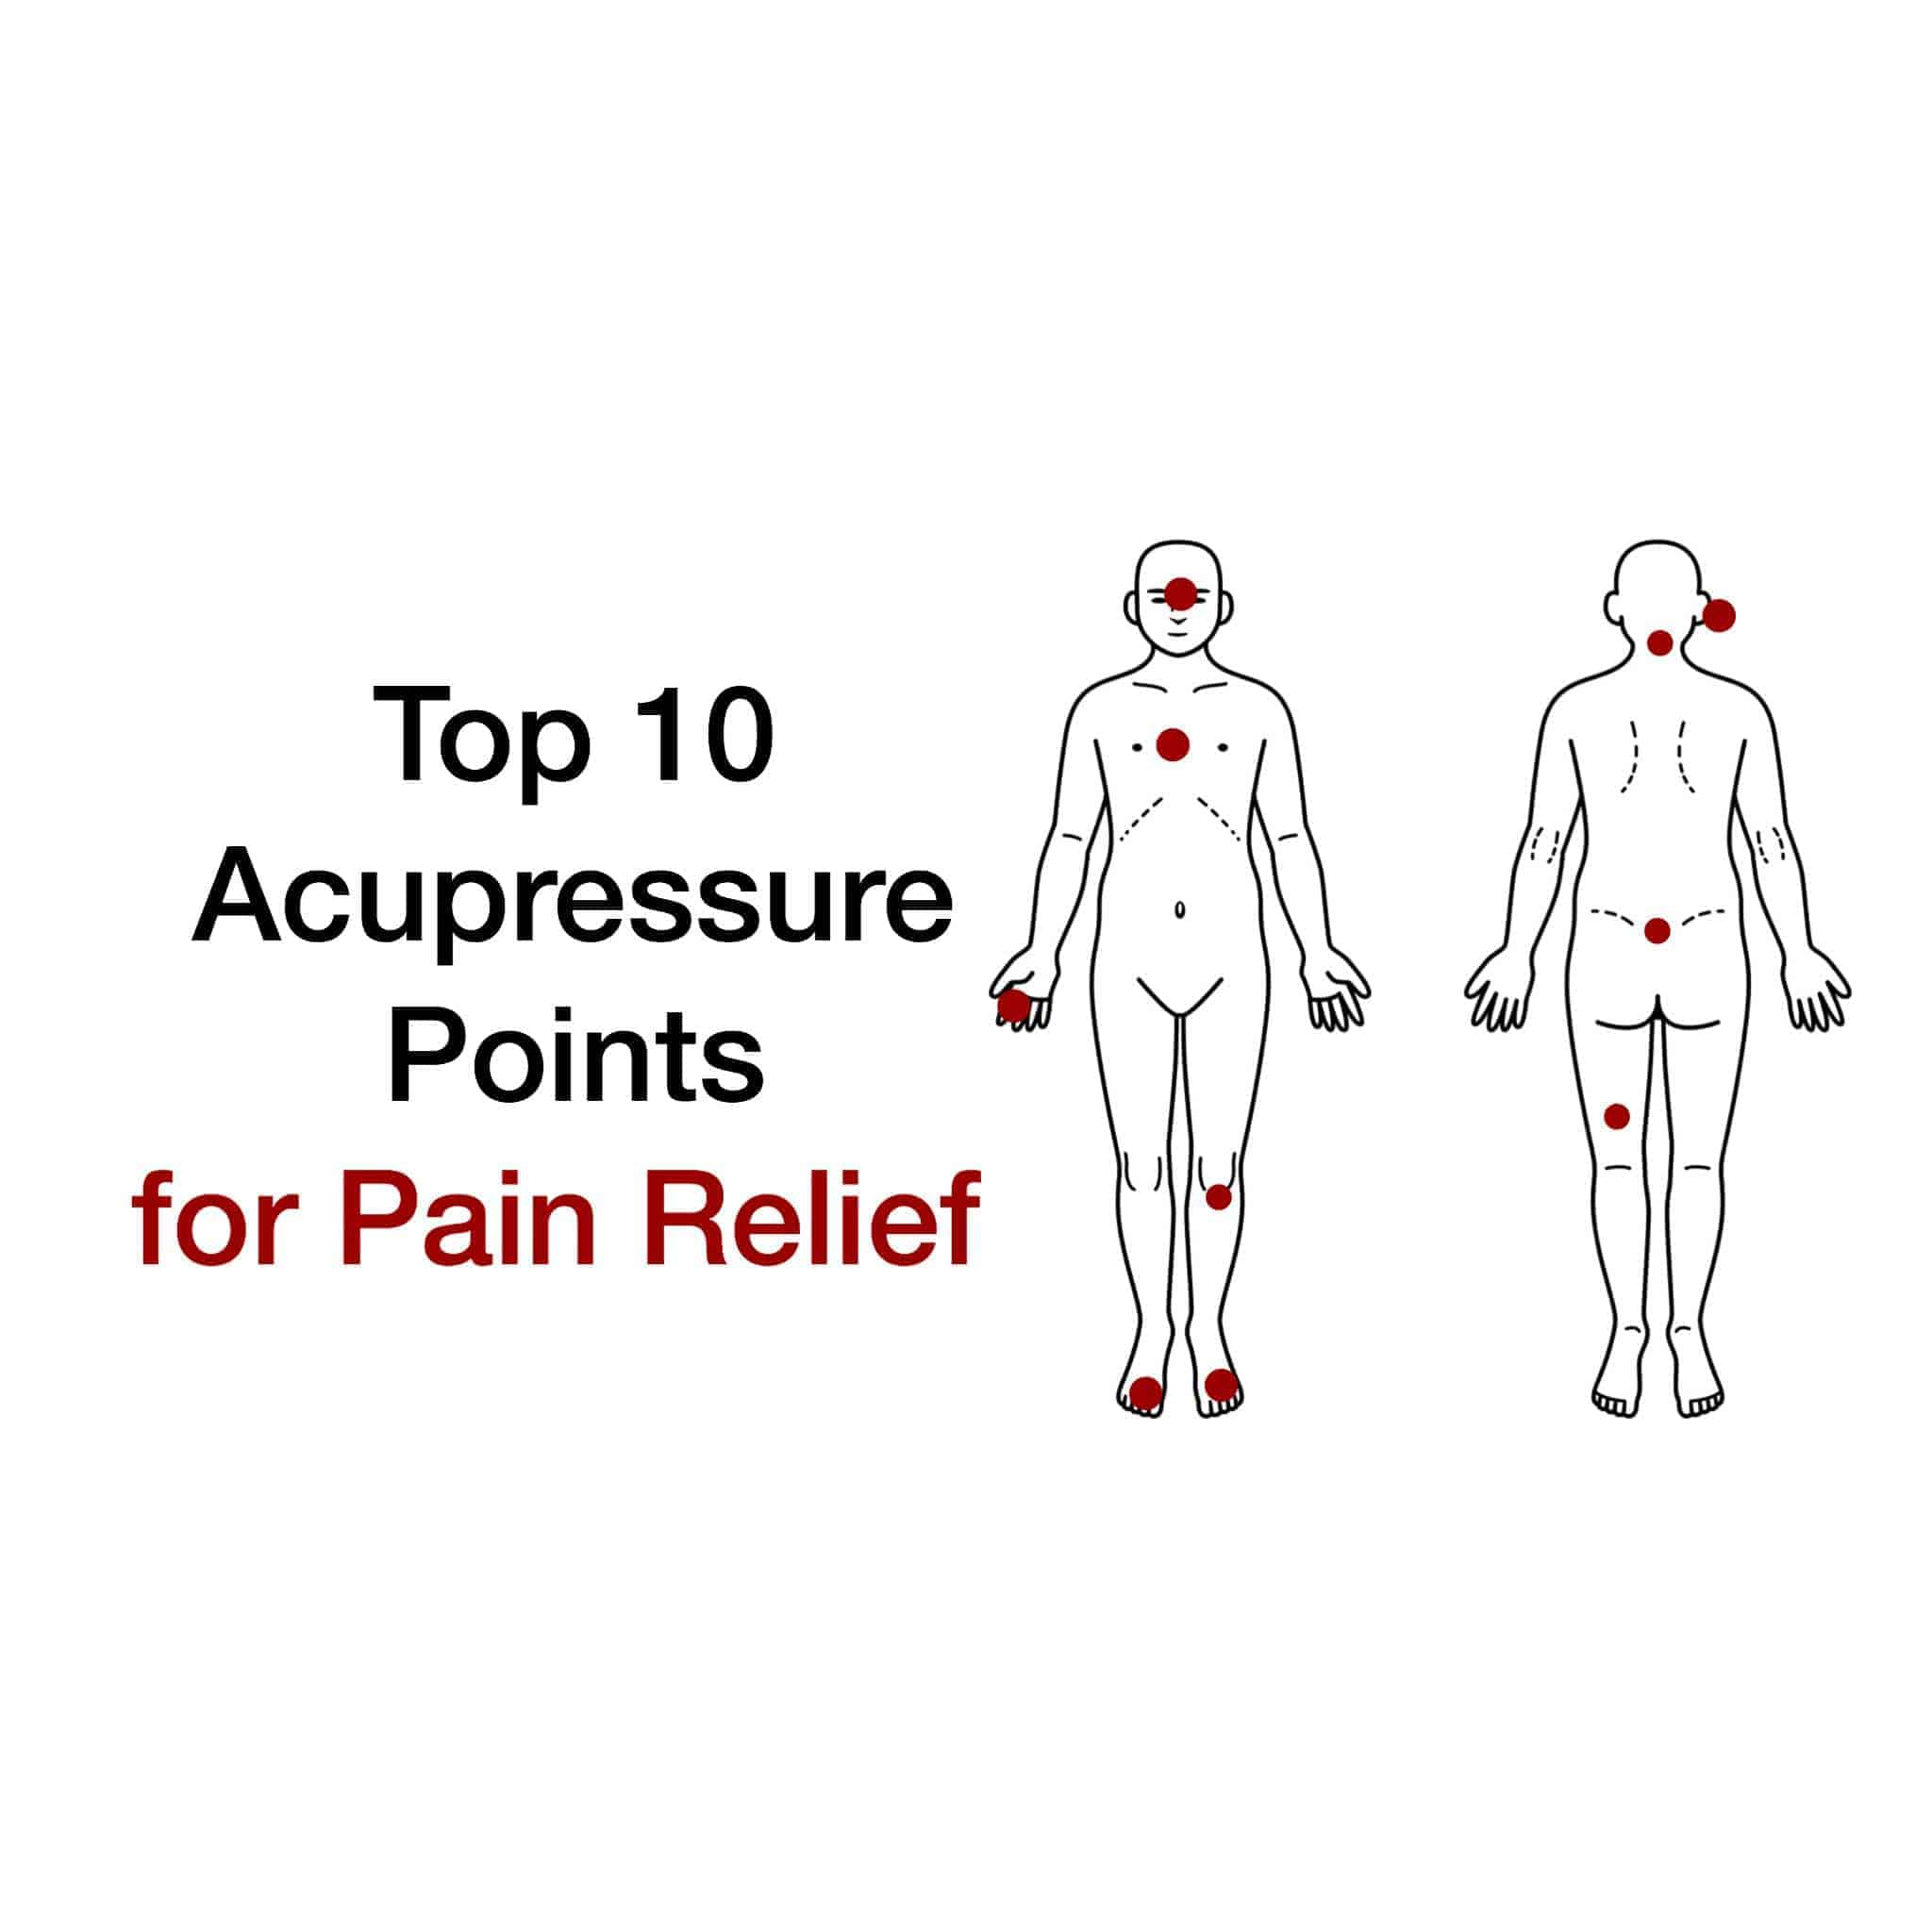 acupressure diagram of pressure points qwerty keyboard worksheet top 10 for pain relief